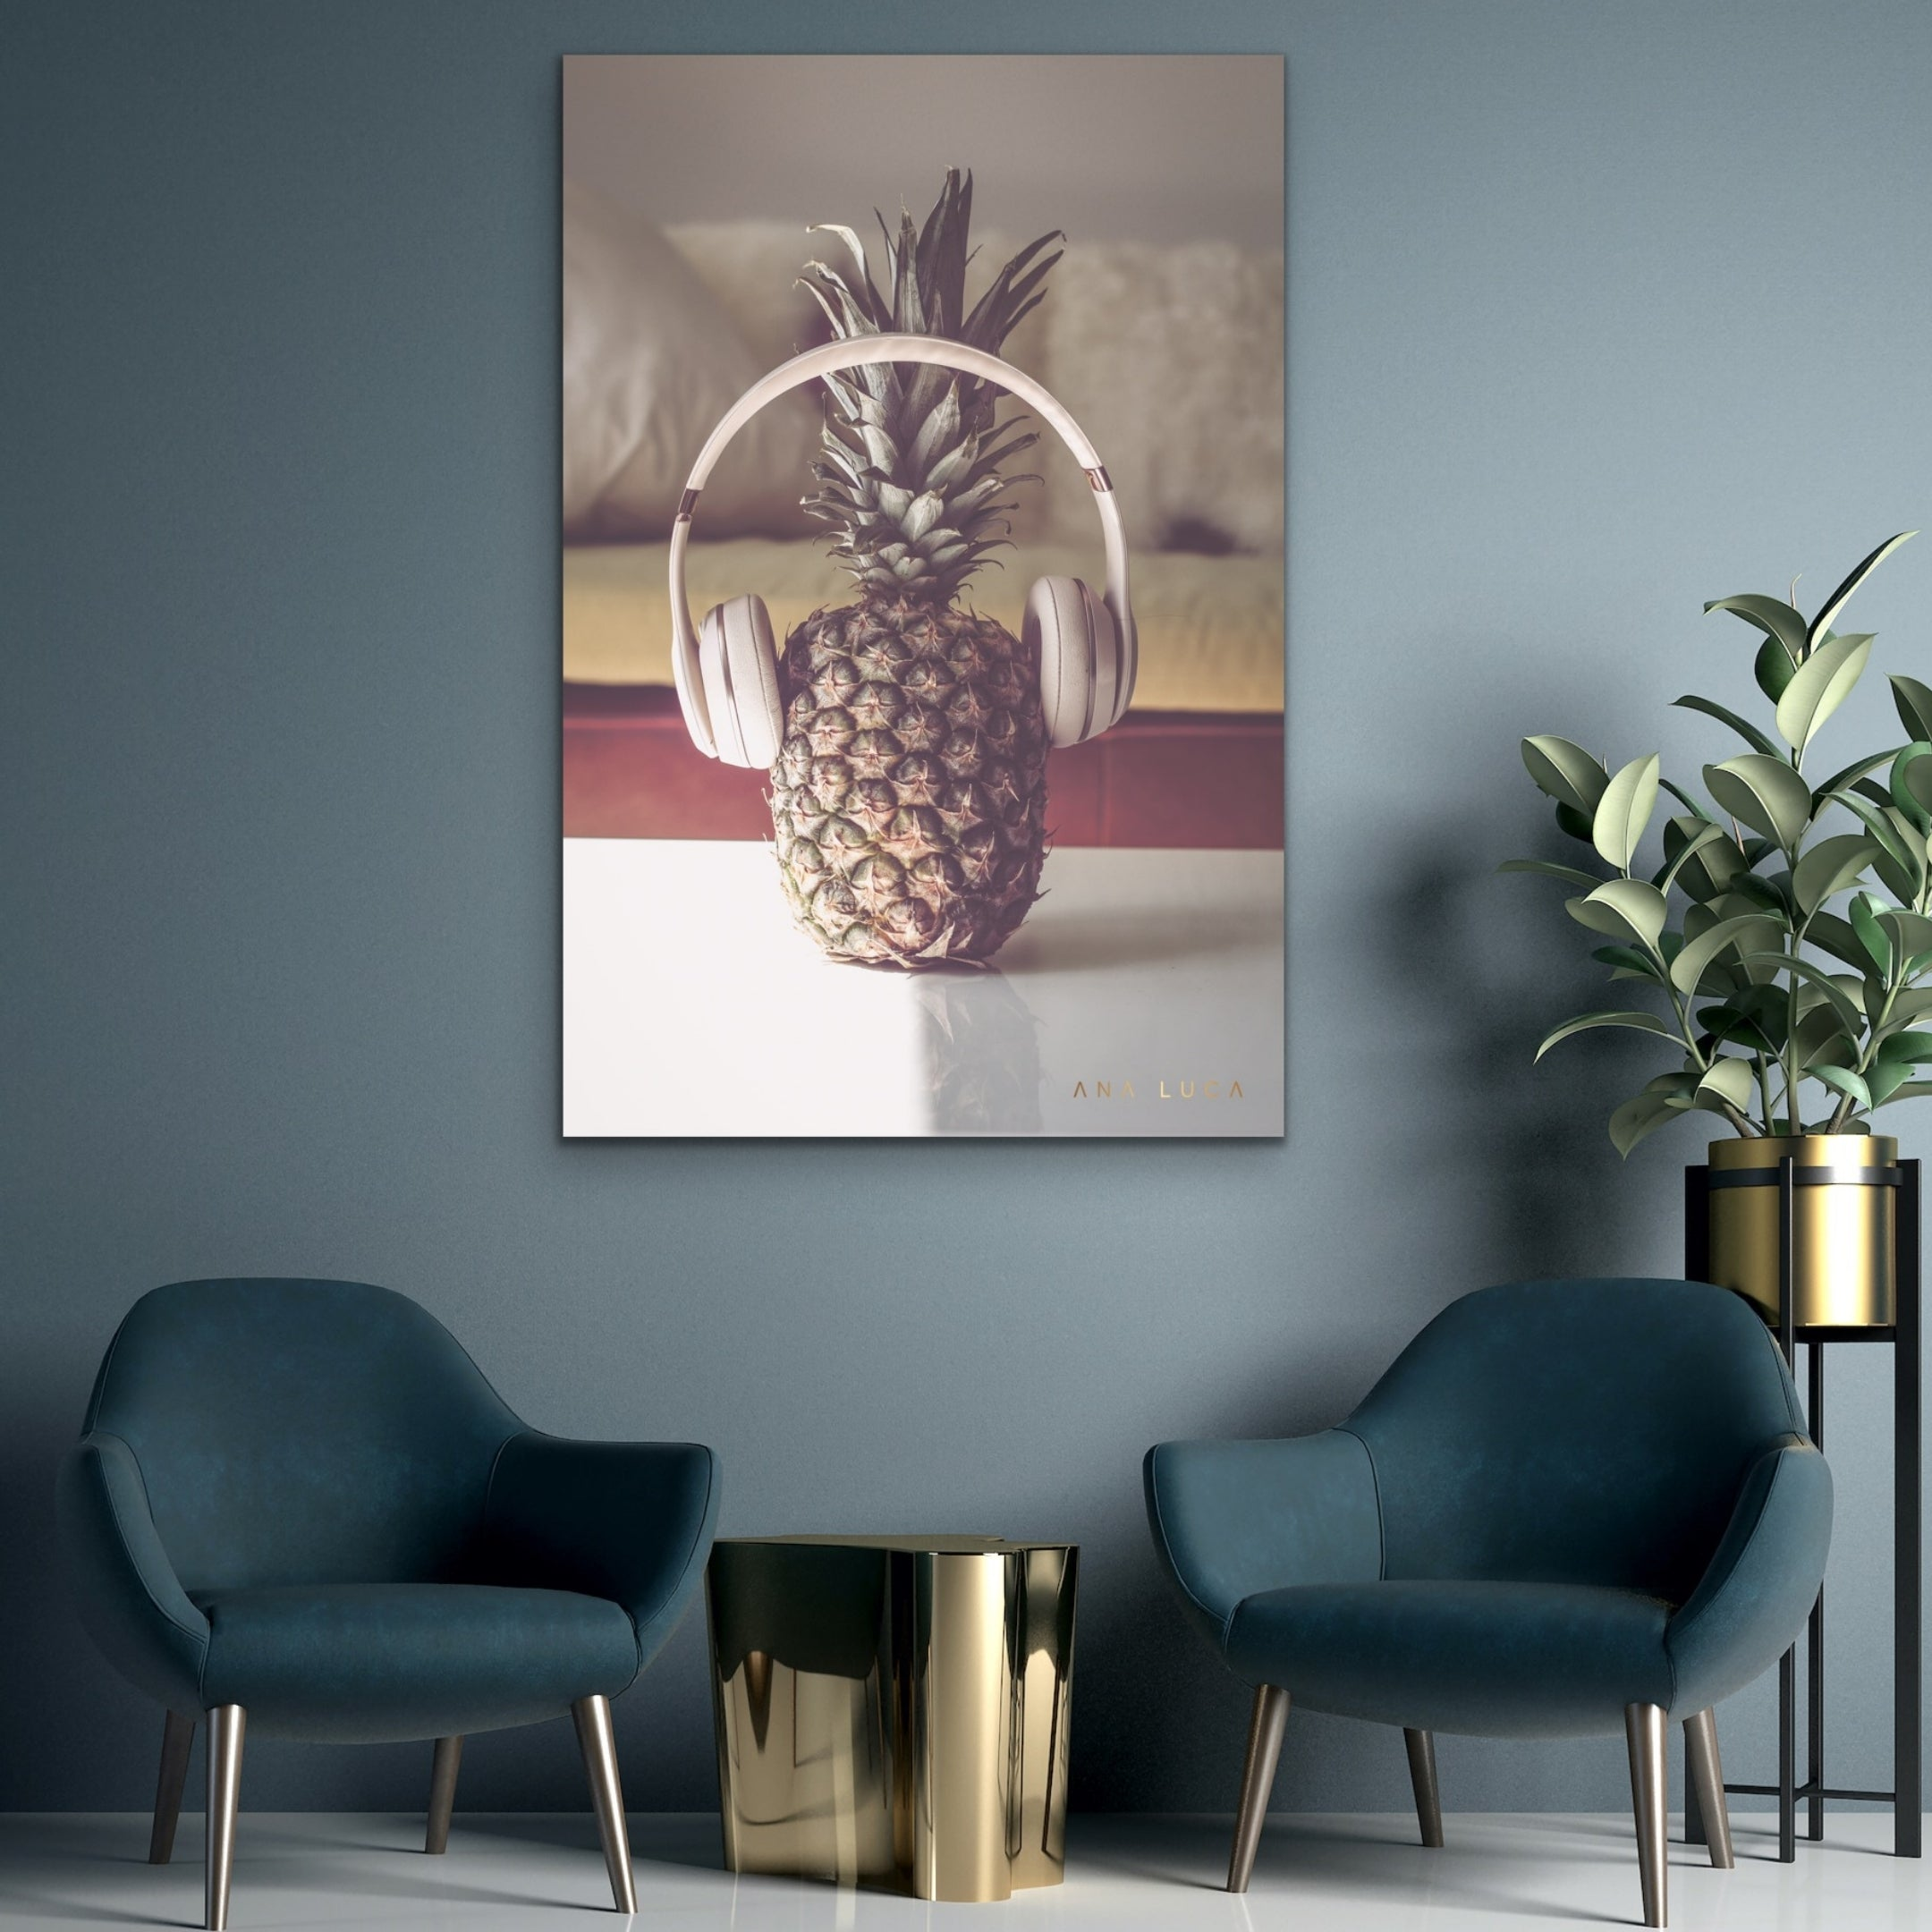 Pineapple Listening To Music by Ana Luca